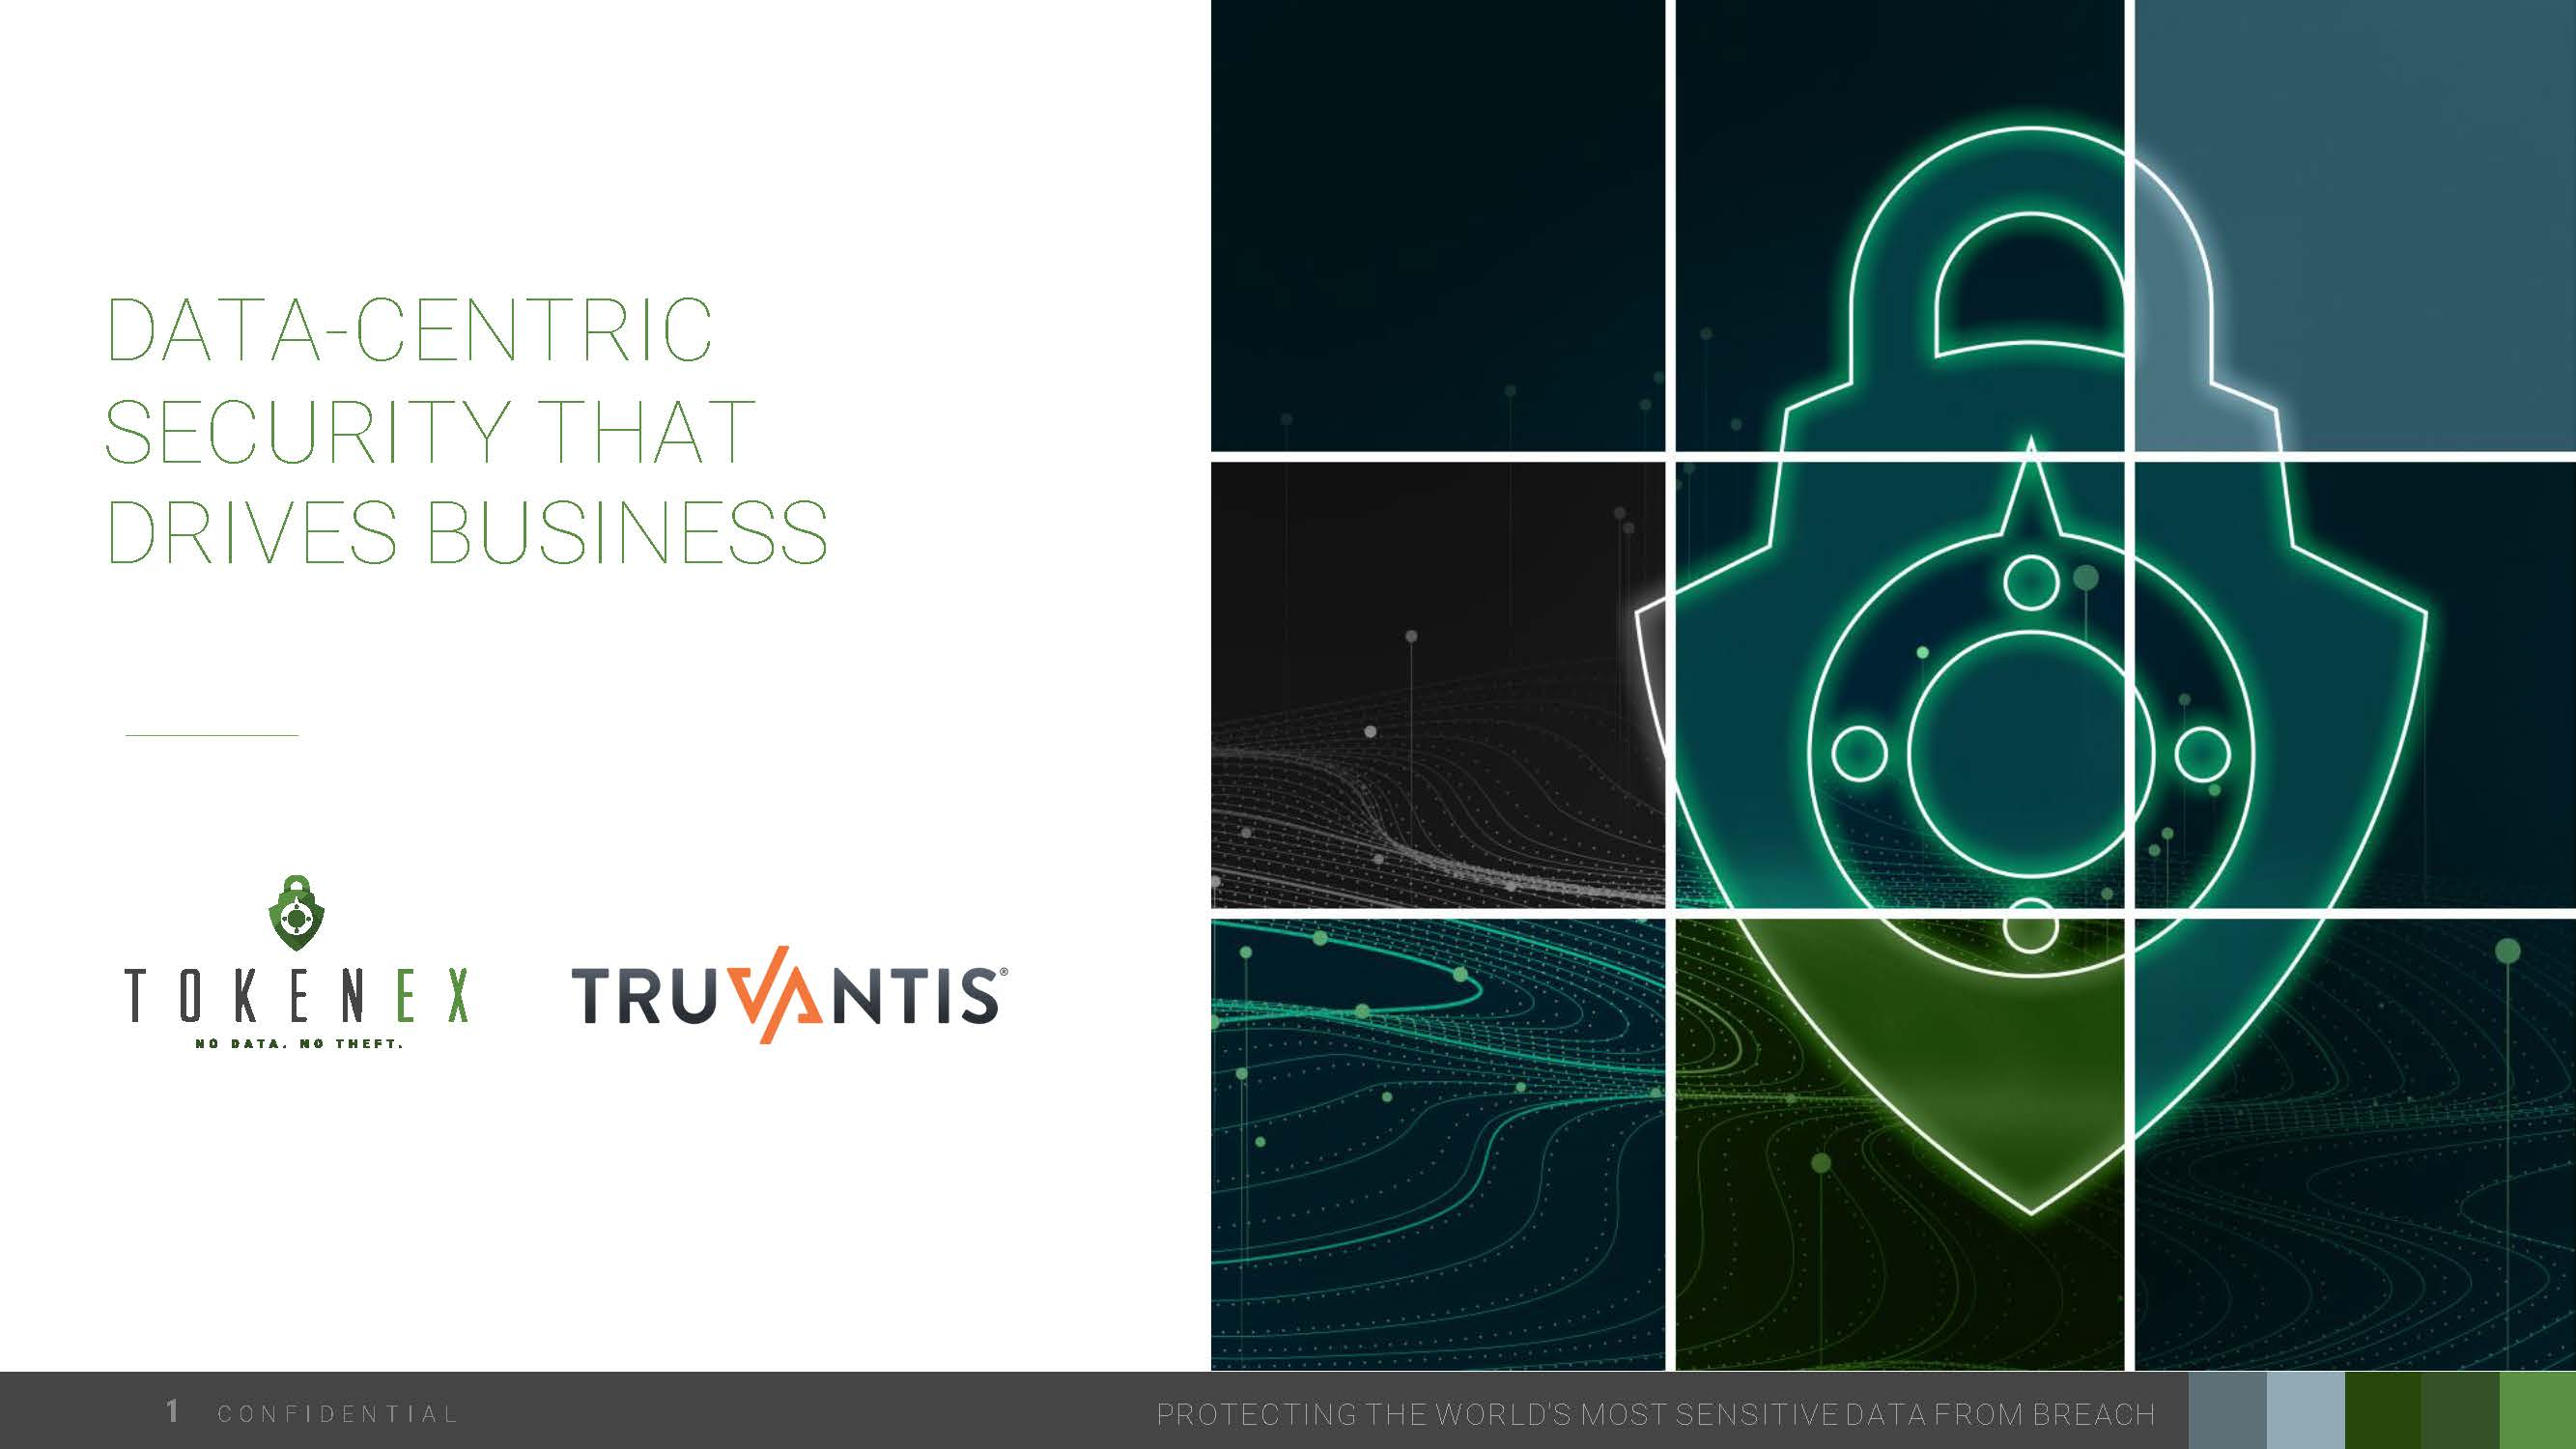 Data-Centric Security That Drives Business